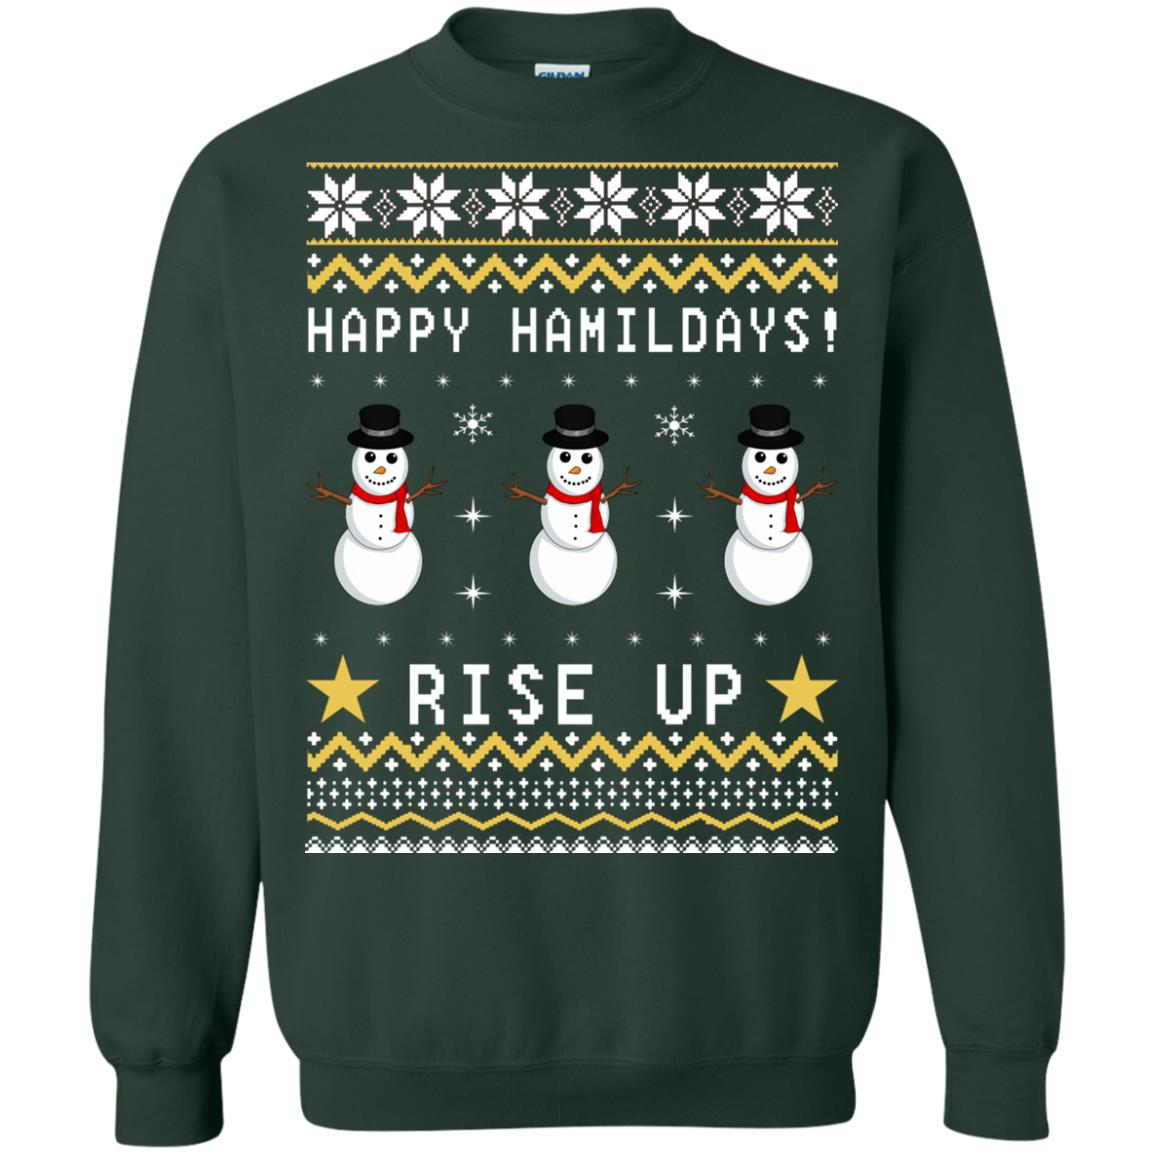 Happy Hamildays Rise Up Christmas Ugly Sweater, Shirt - image 3399